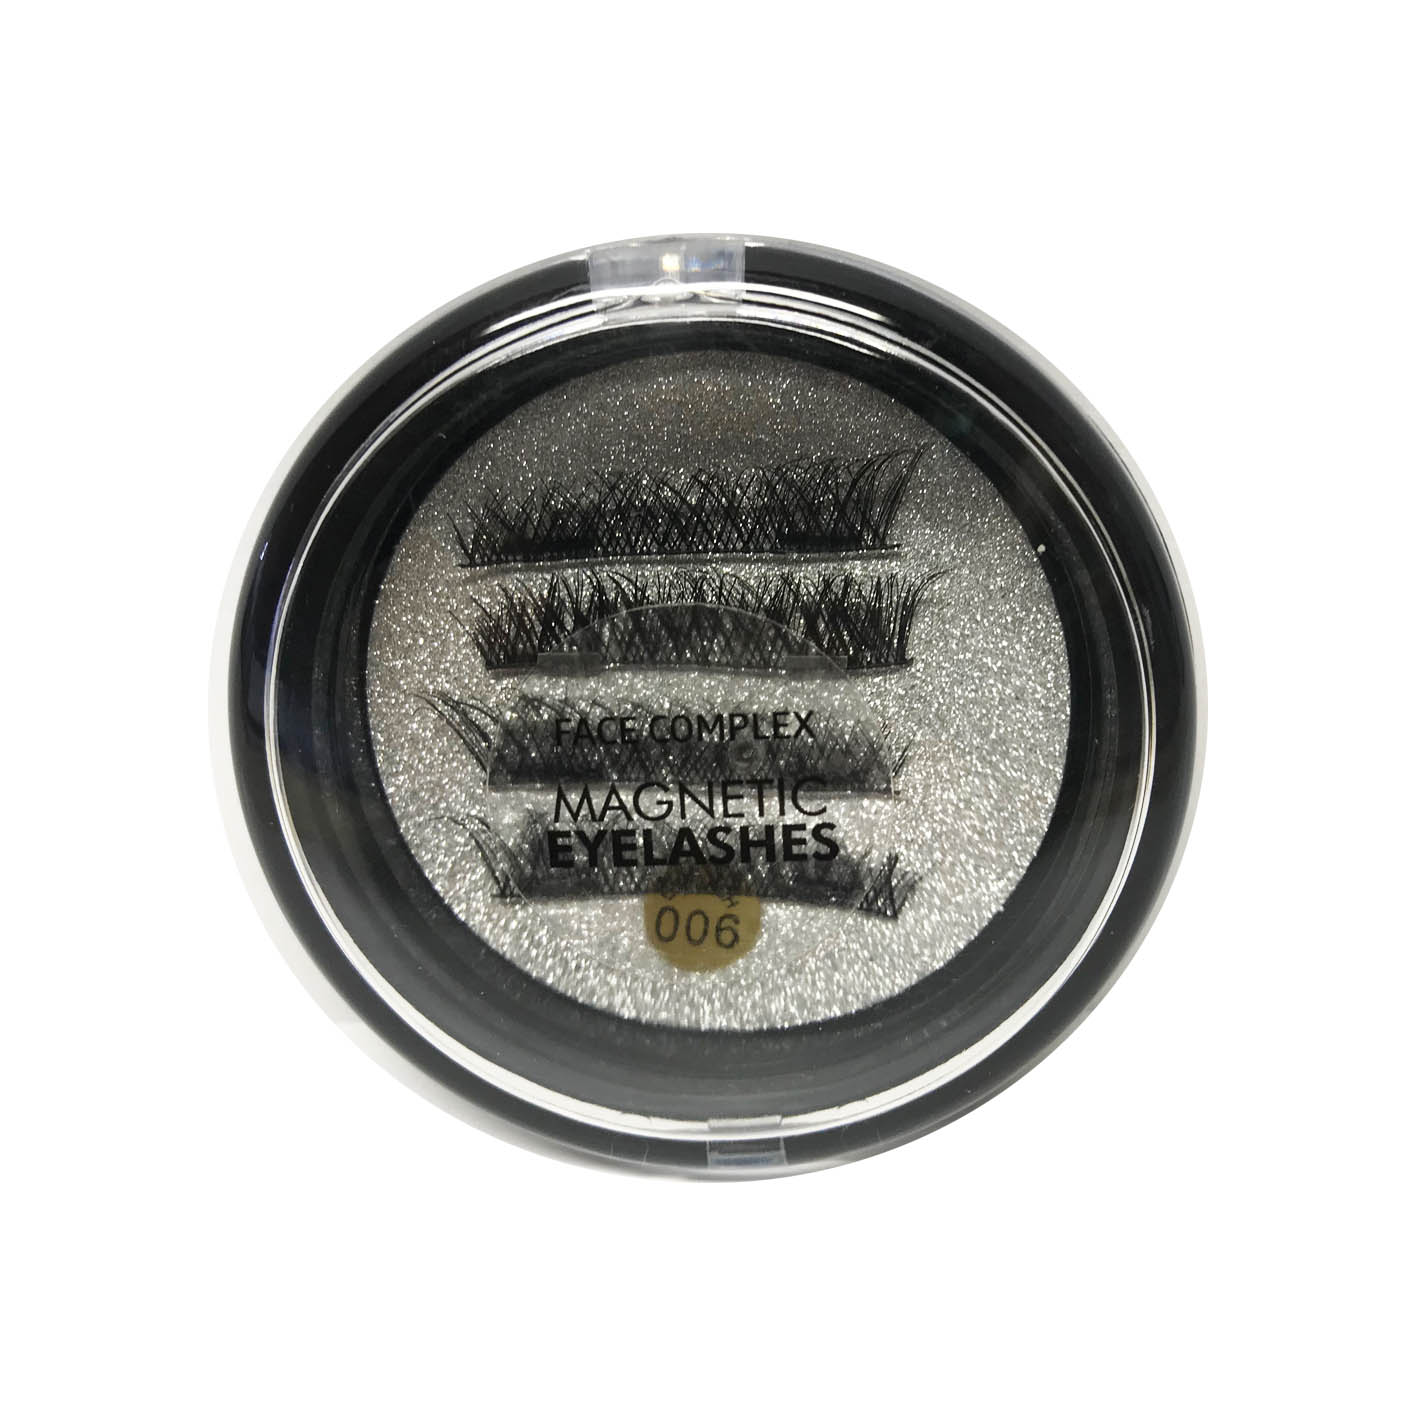 FACE COMPLEX MAGNETIC EYELASHES CIGLIA FINTE EXTENSION MAKE UP 006